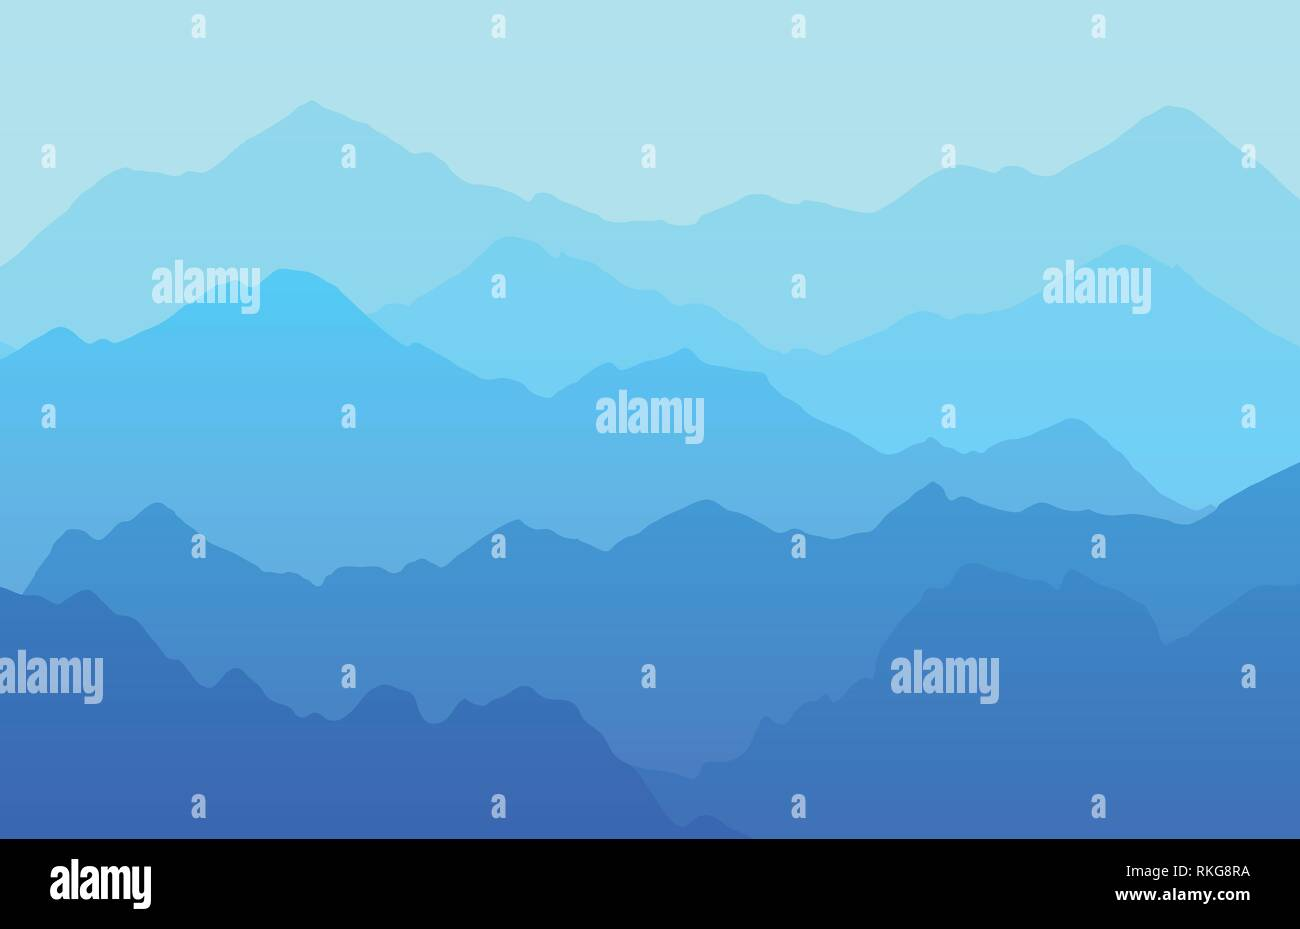 Beautiful vector landscape background with mountains - Stock Vector